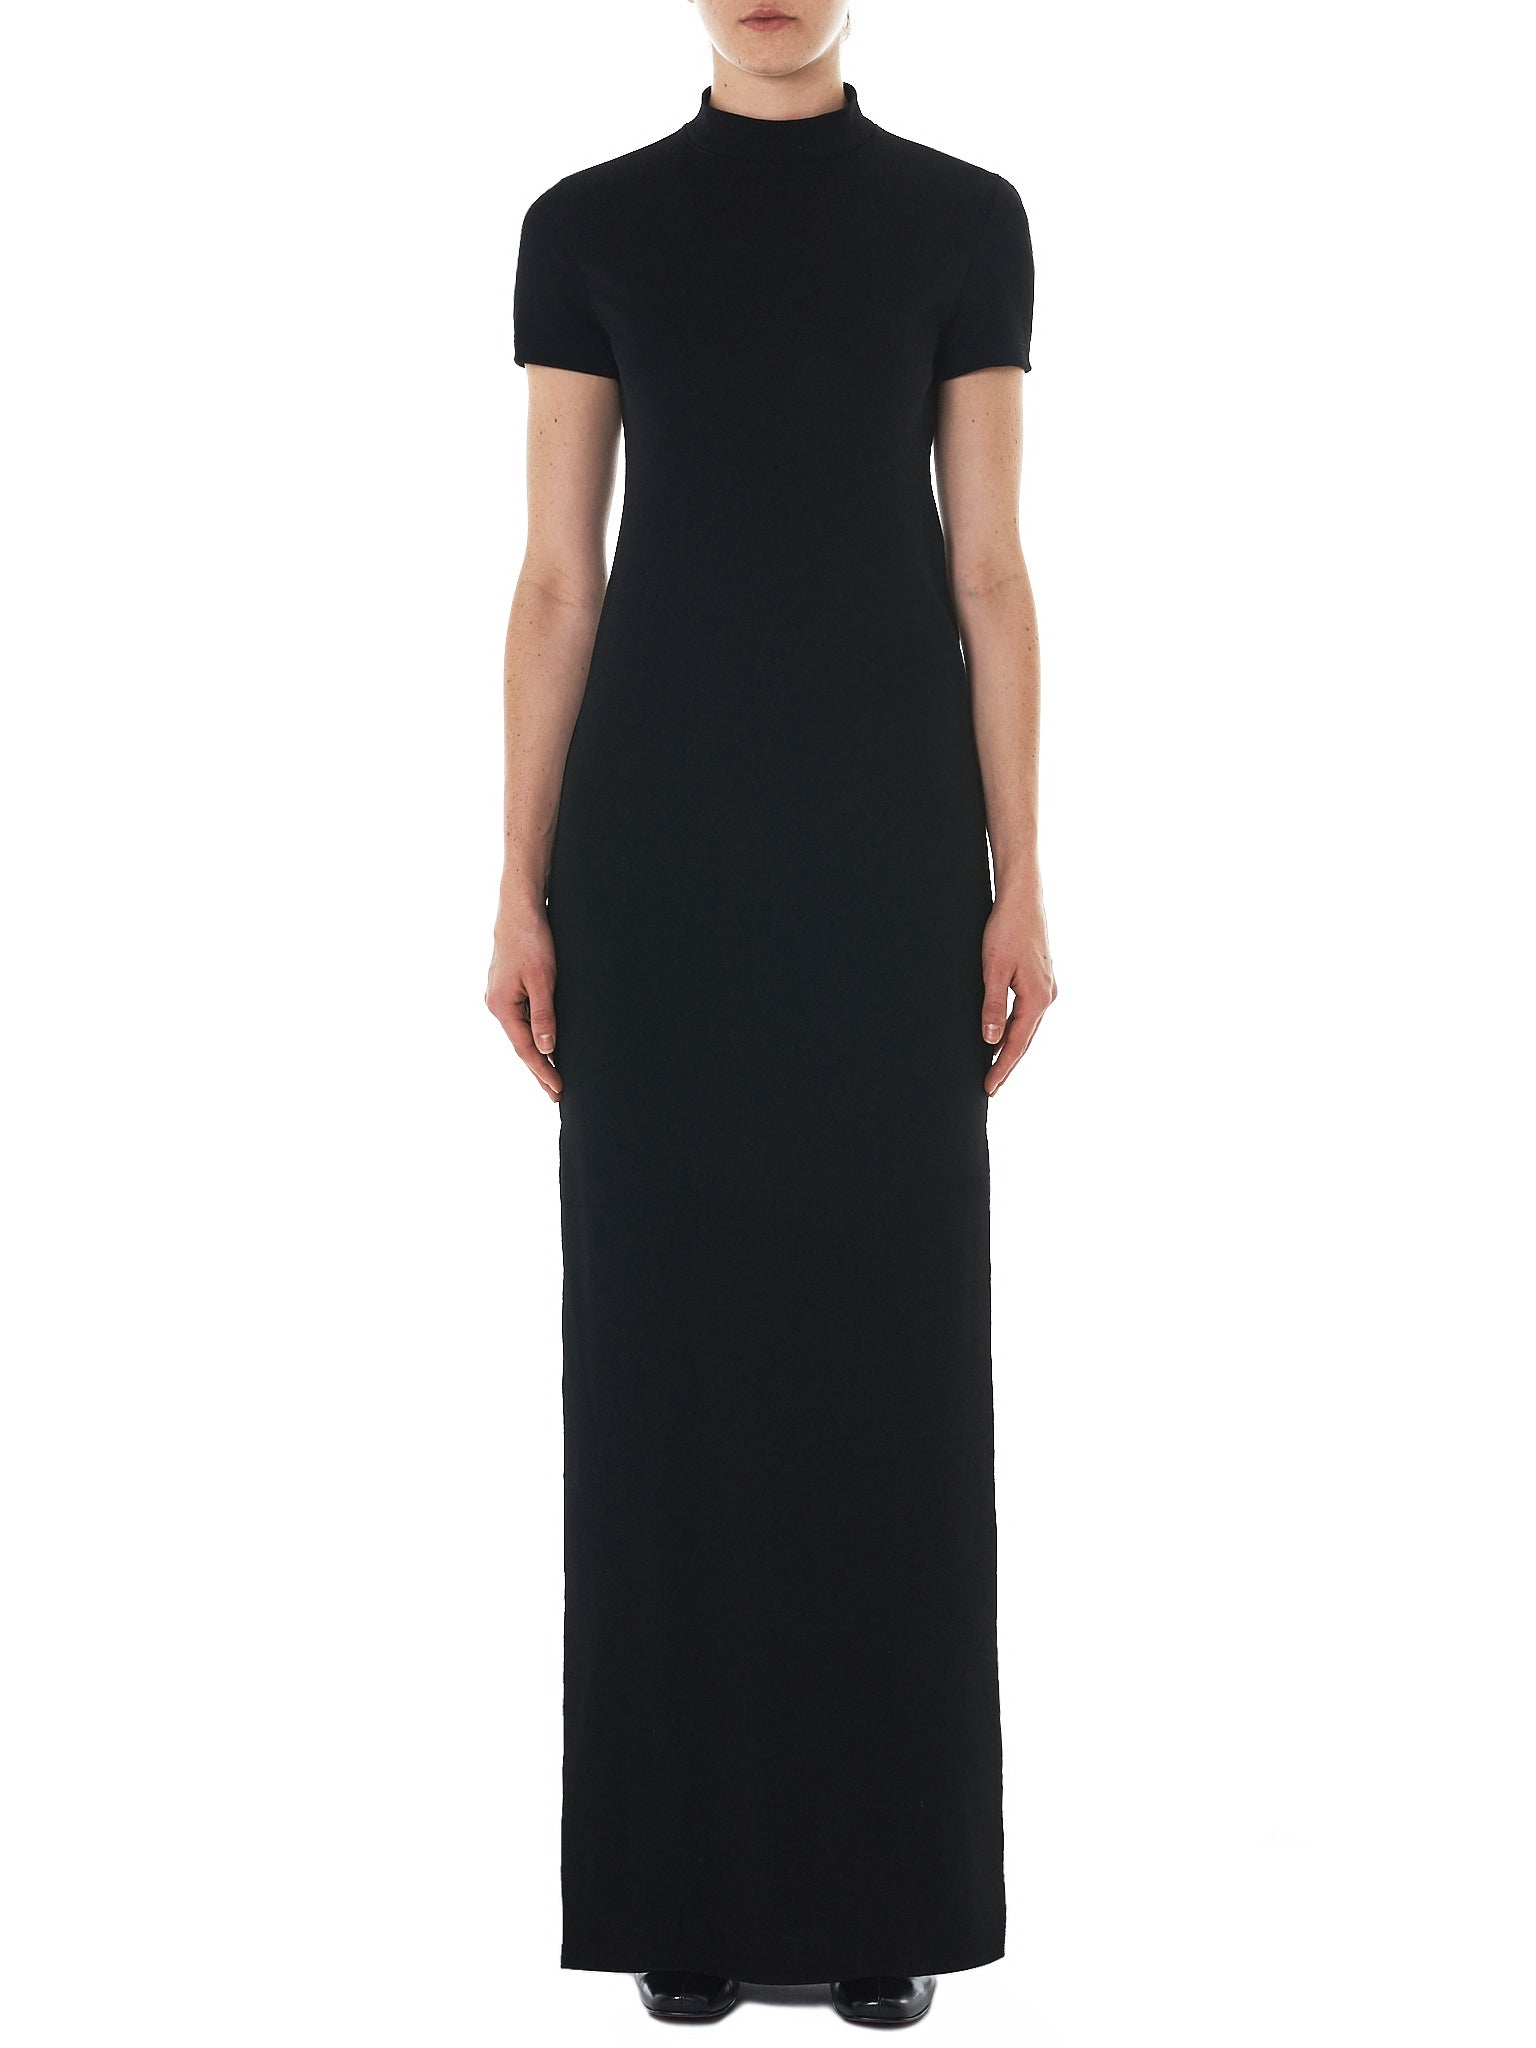 Kwaidan Long Dress - Hlorenzo Front